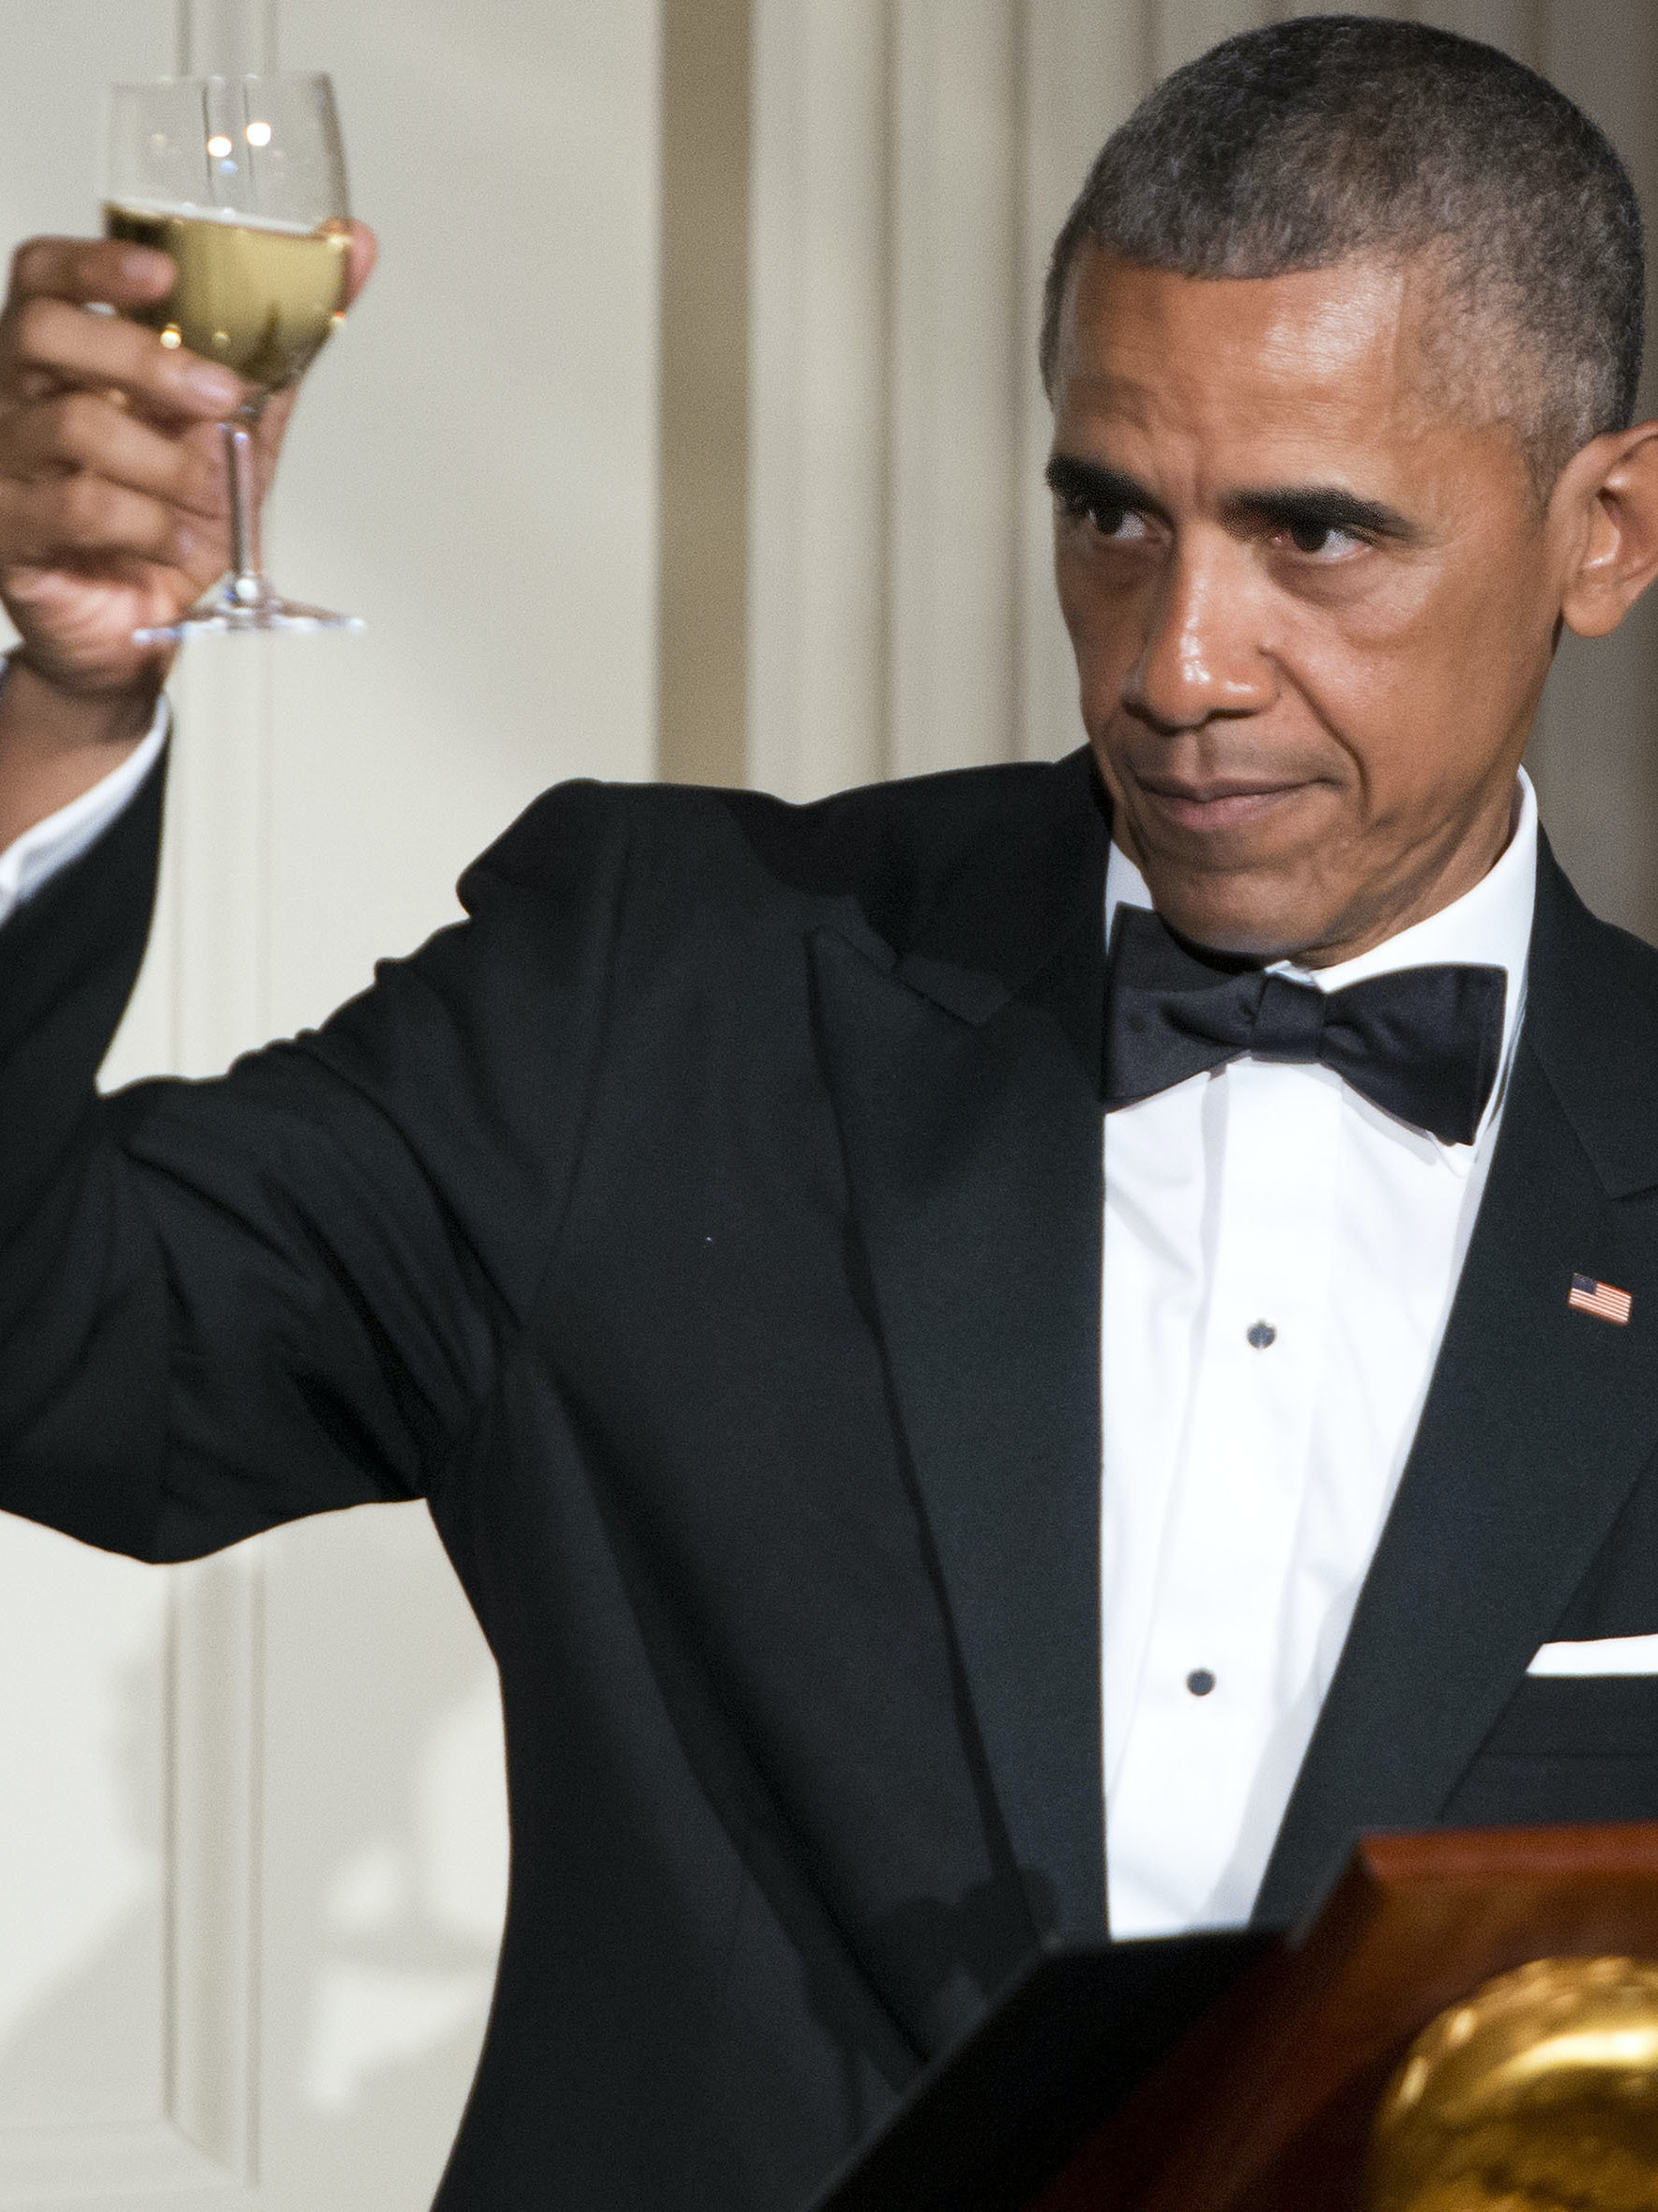 WASHINGTON, DC - AUGUST 02: President Barack Obama makes a toast in honor of Prime Minister Lee Hsien Loong in the East Room of the White House on August 2, 2016 in Washington, DC. The Obamas are hosting the prime minister and his wife for an official state dinner.  (Photo by Leigh Vogel-Pool/Getty Images)